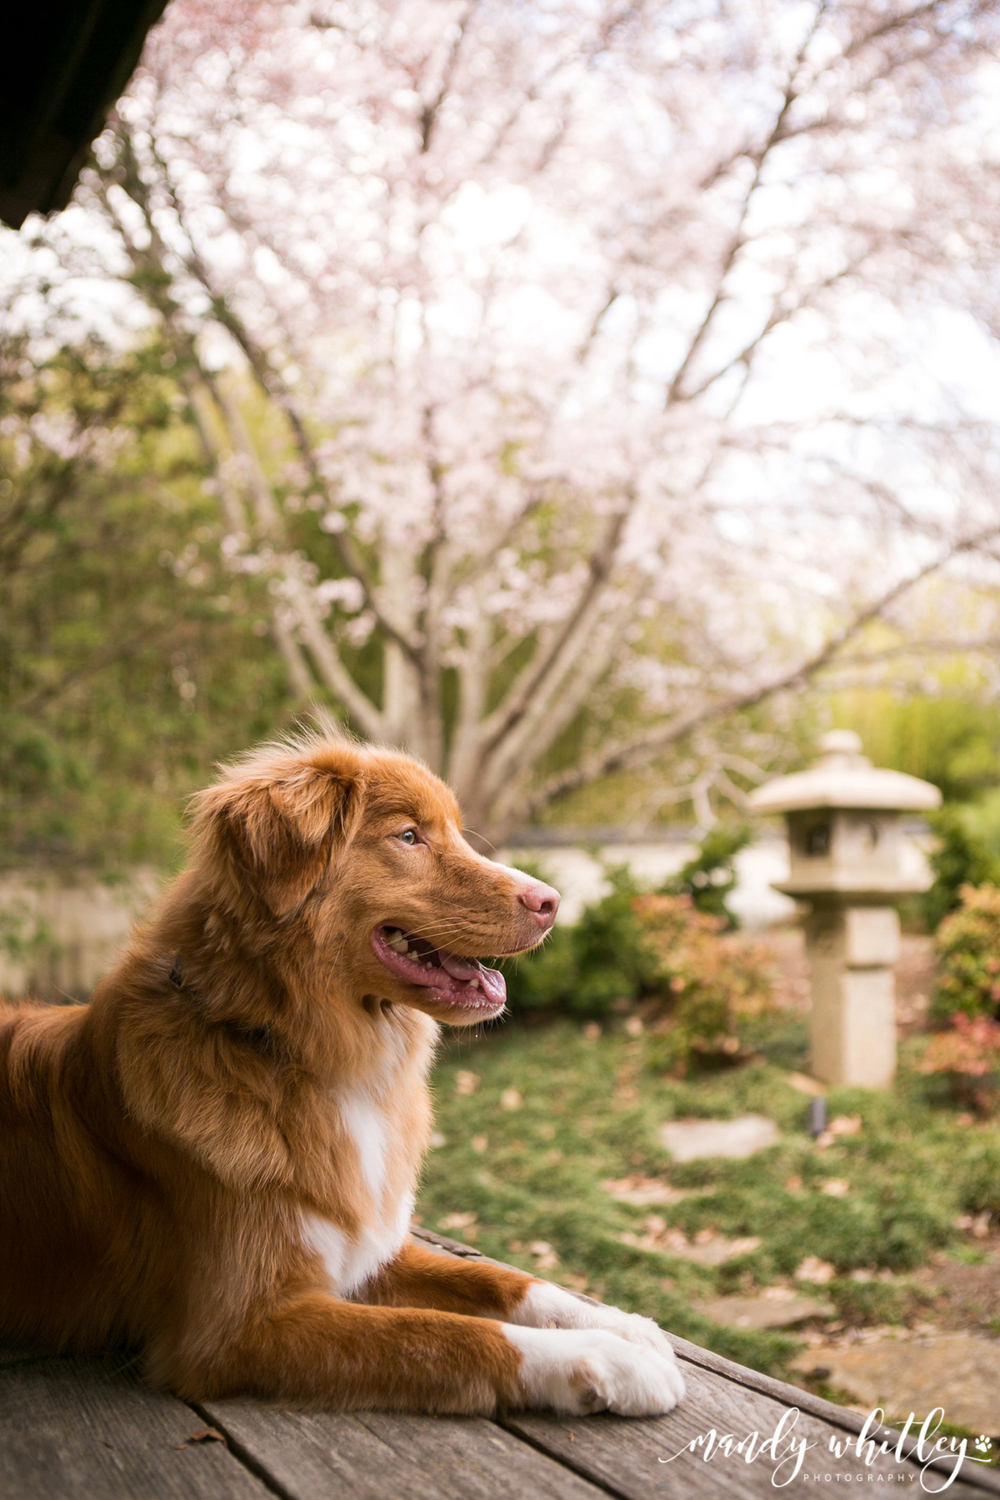 Nashville Lifestyles Cover Dog Contest | Cheekwood